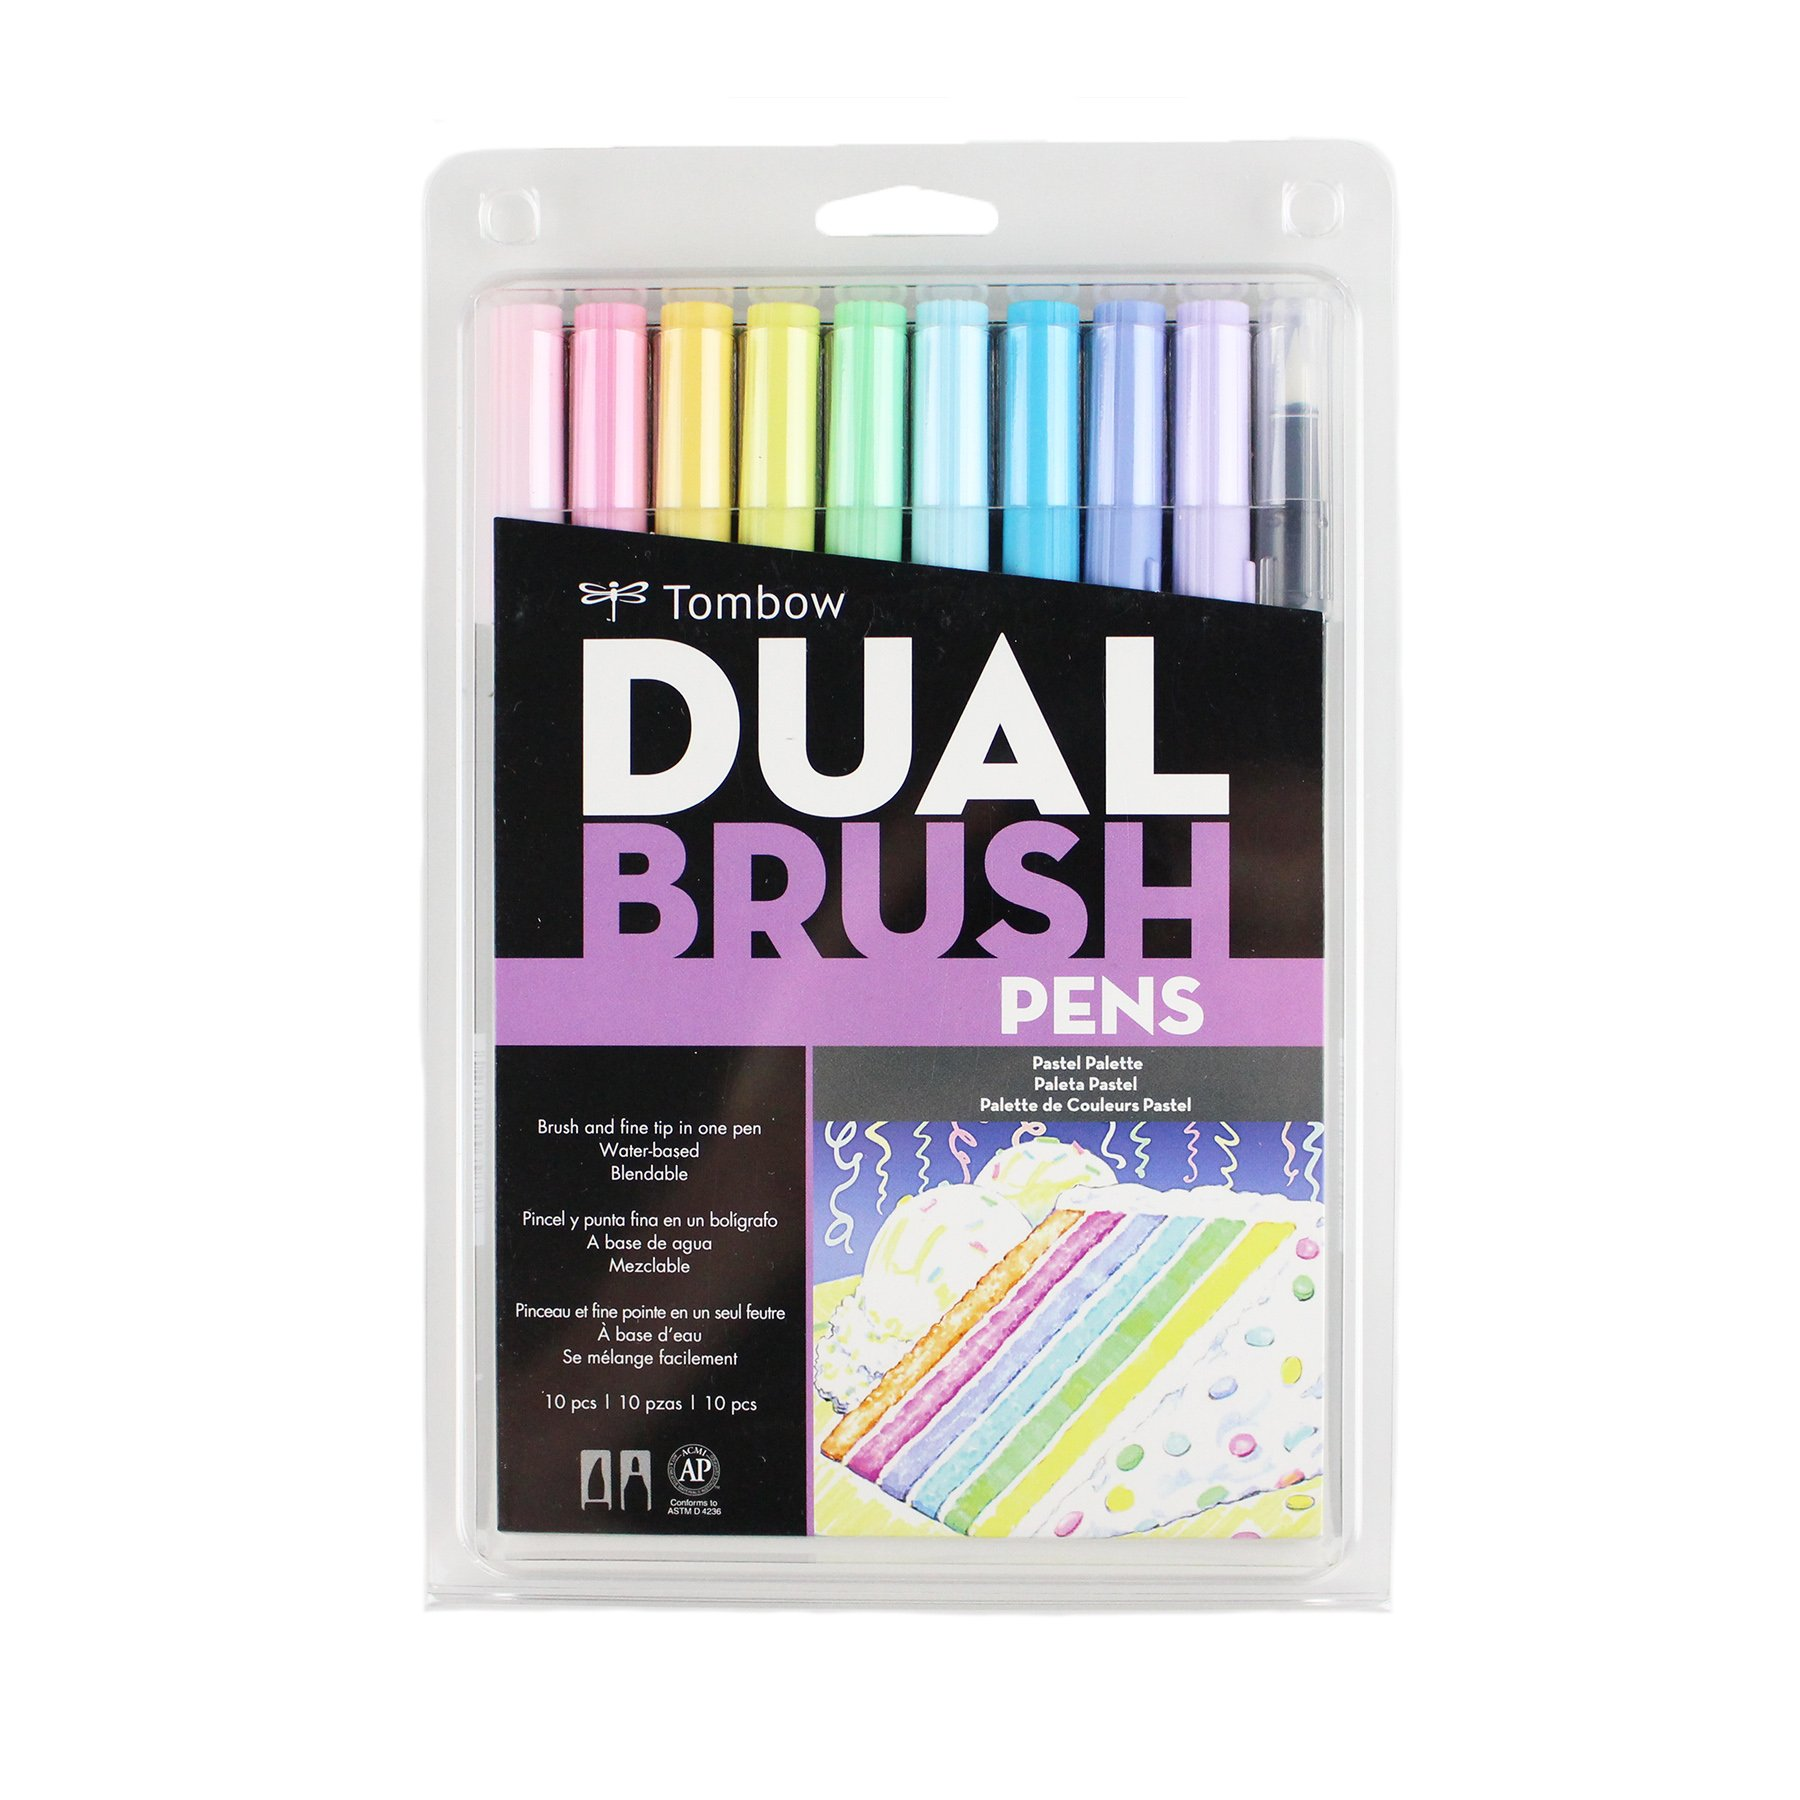 Tombow Dual Brush Pen Markers, 10 Pack, Pastel